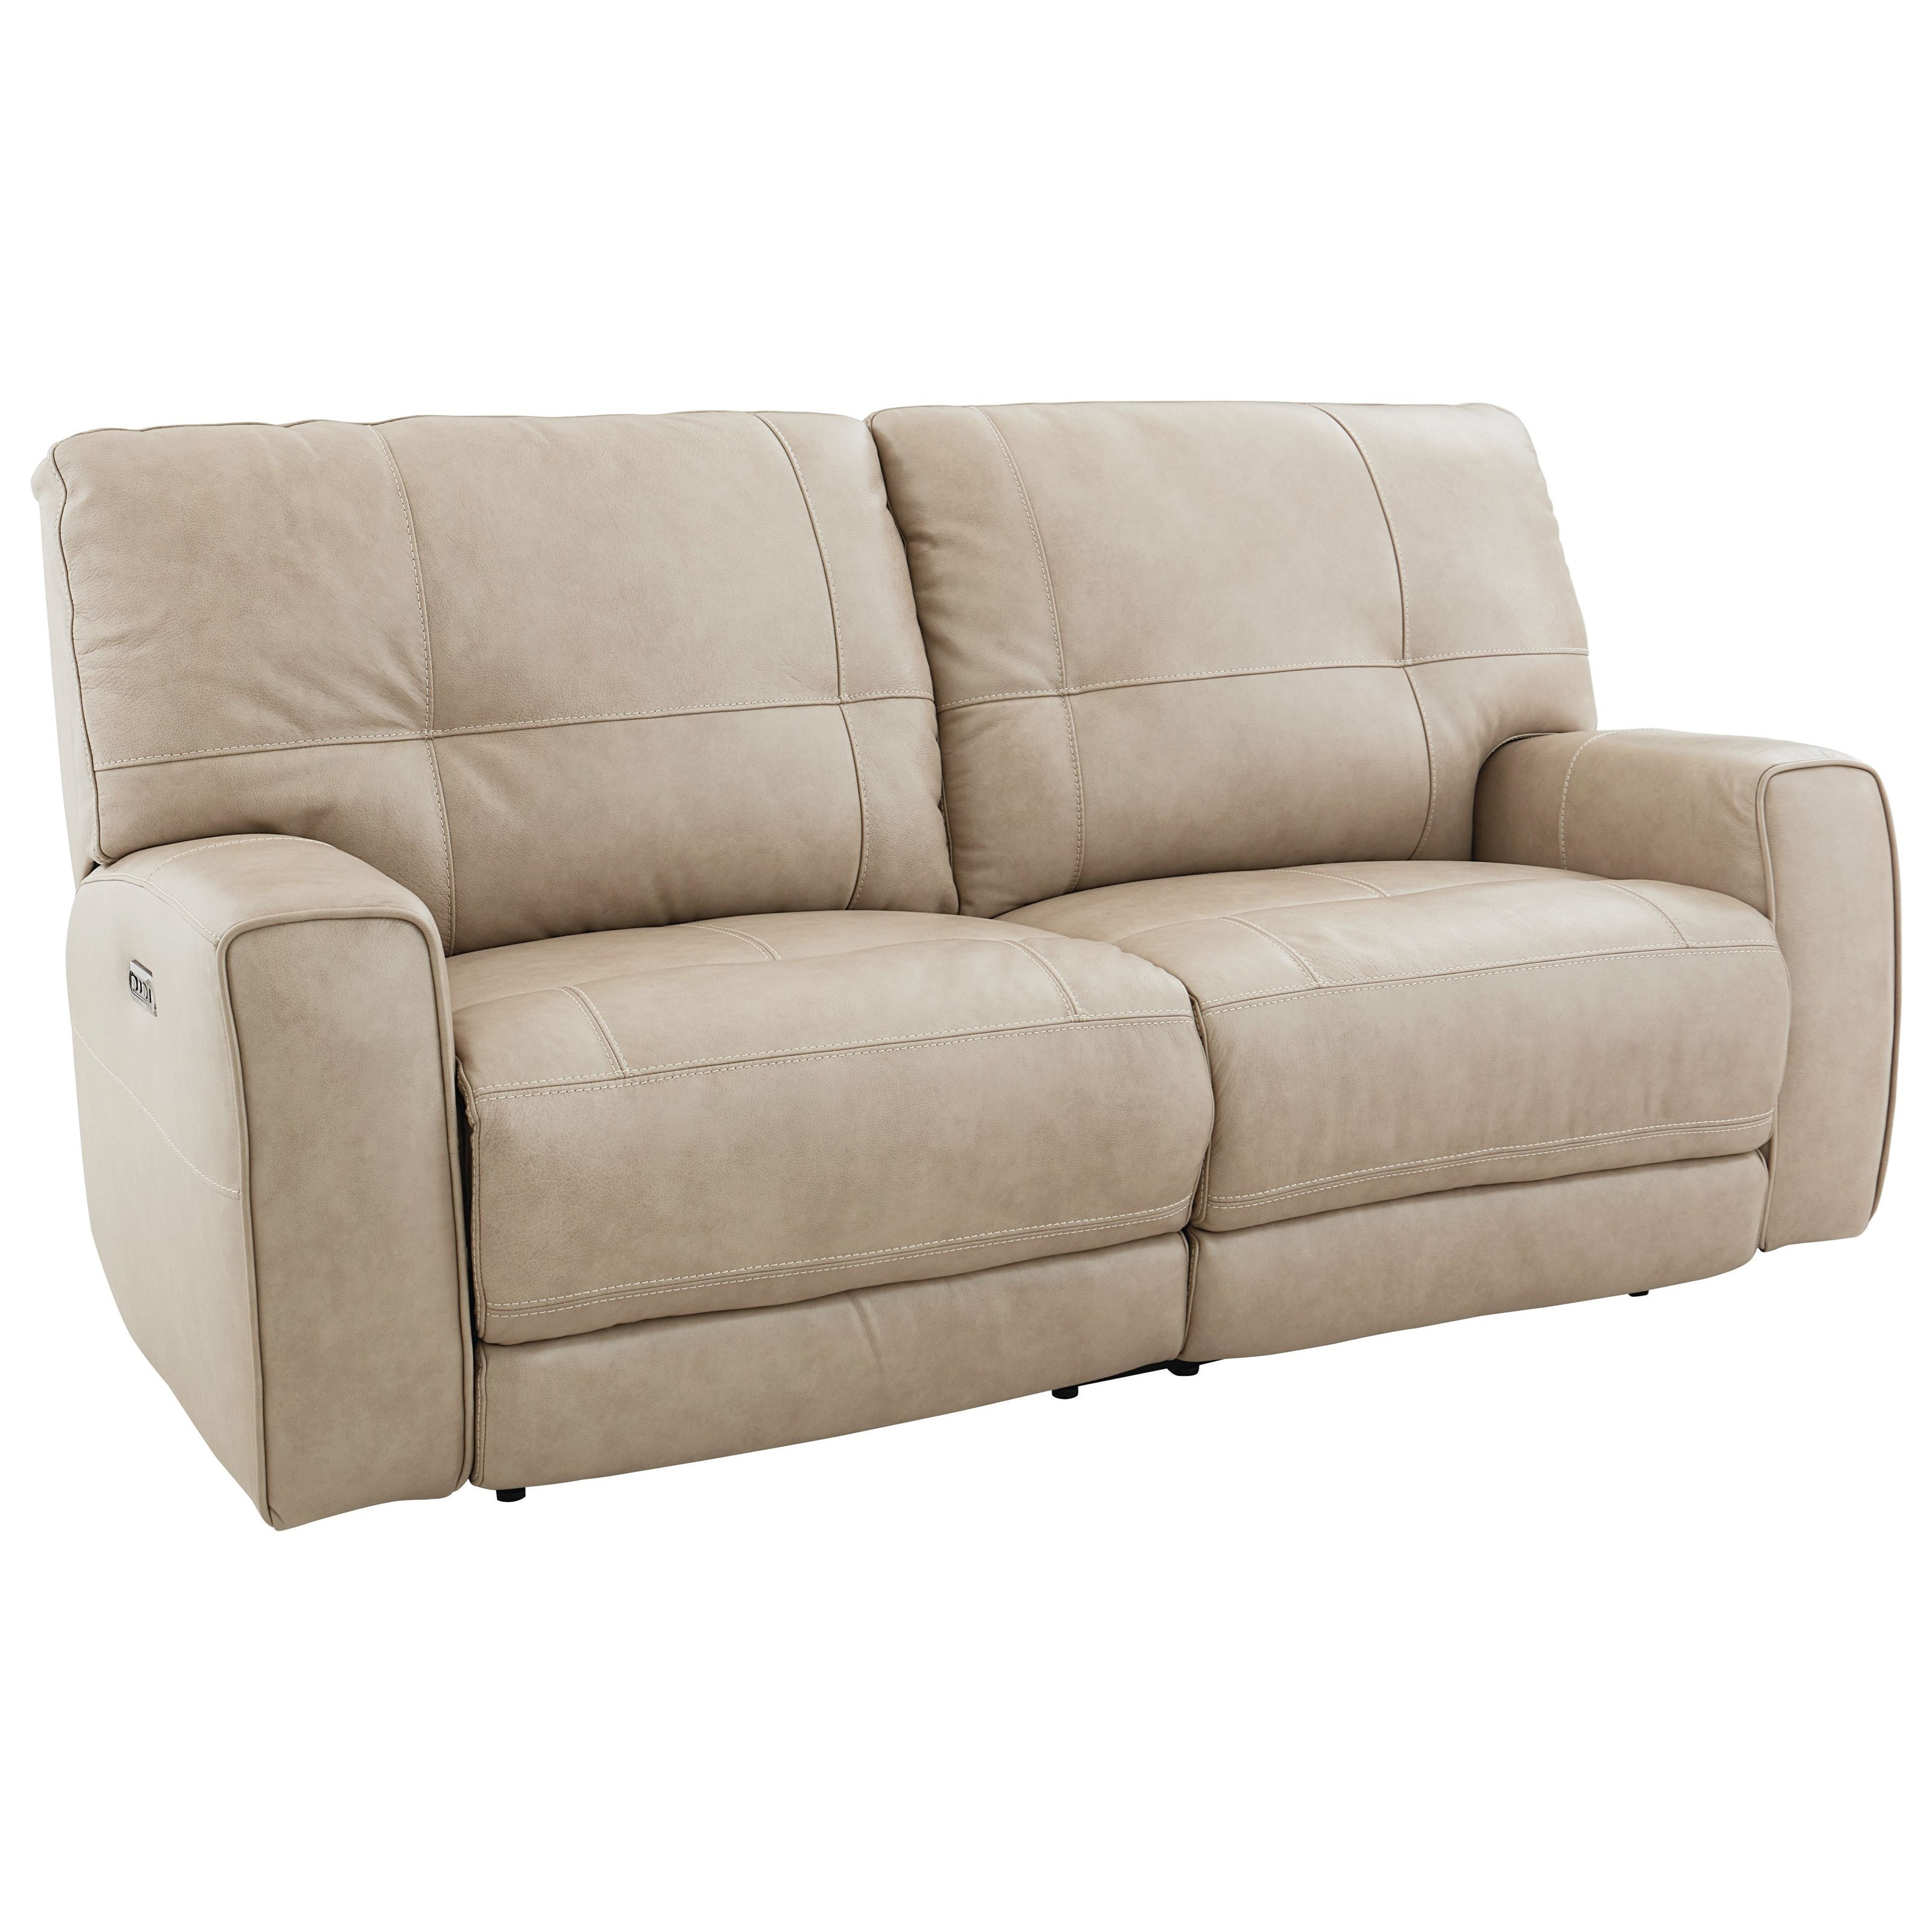 Bassett Conway 3715 P62a Casual Power Reclining Sofa With